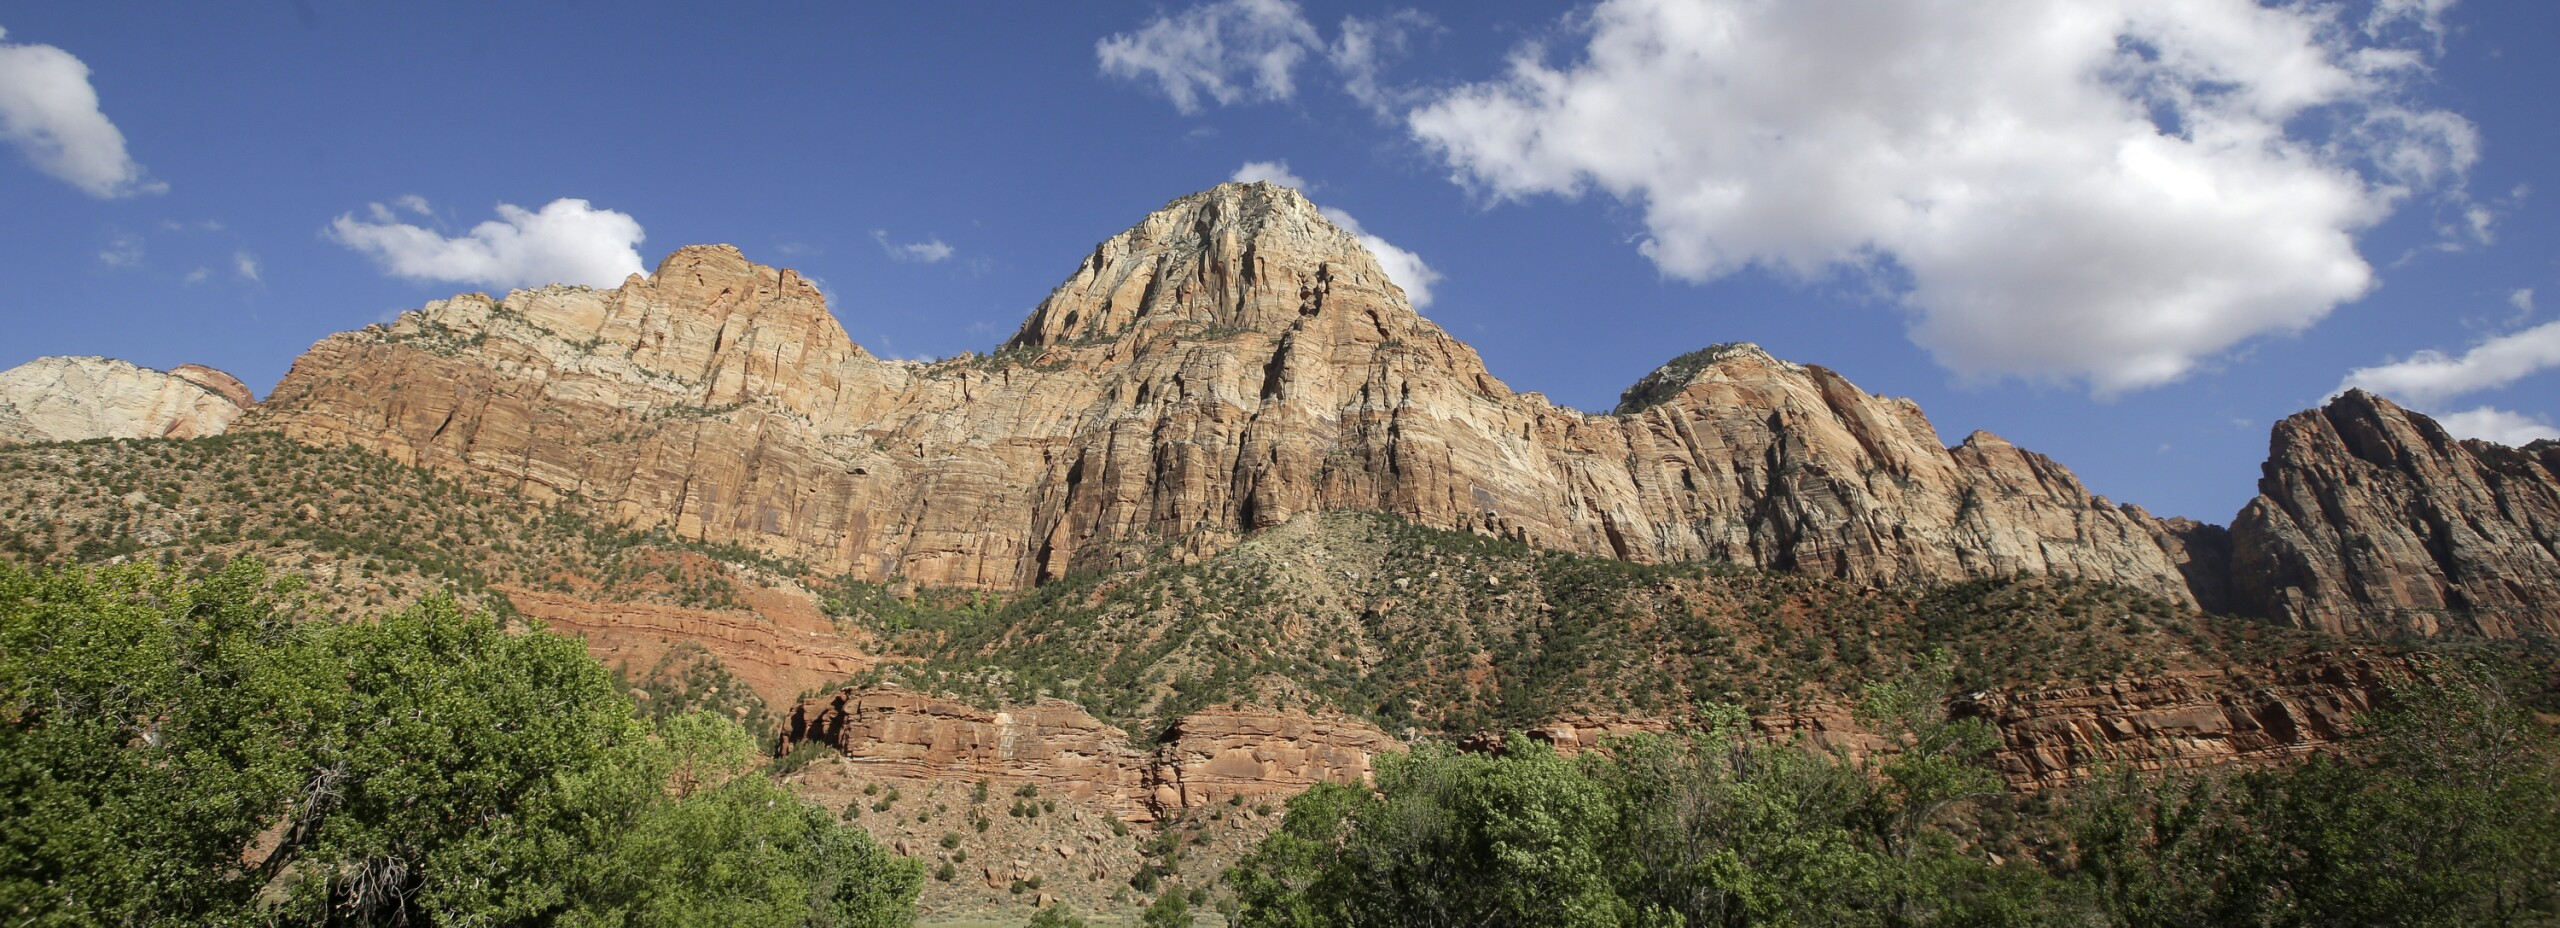 Zion National Park Base Jumping